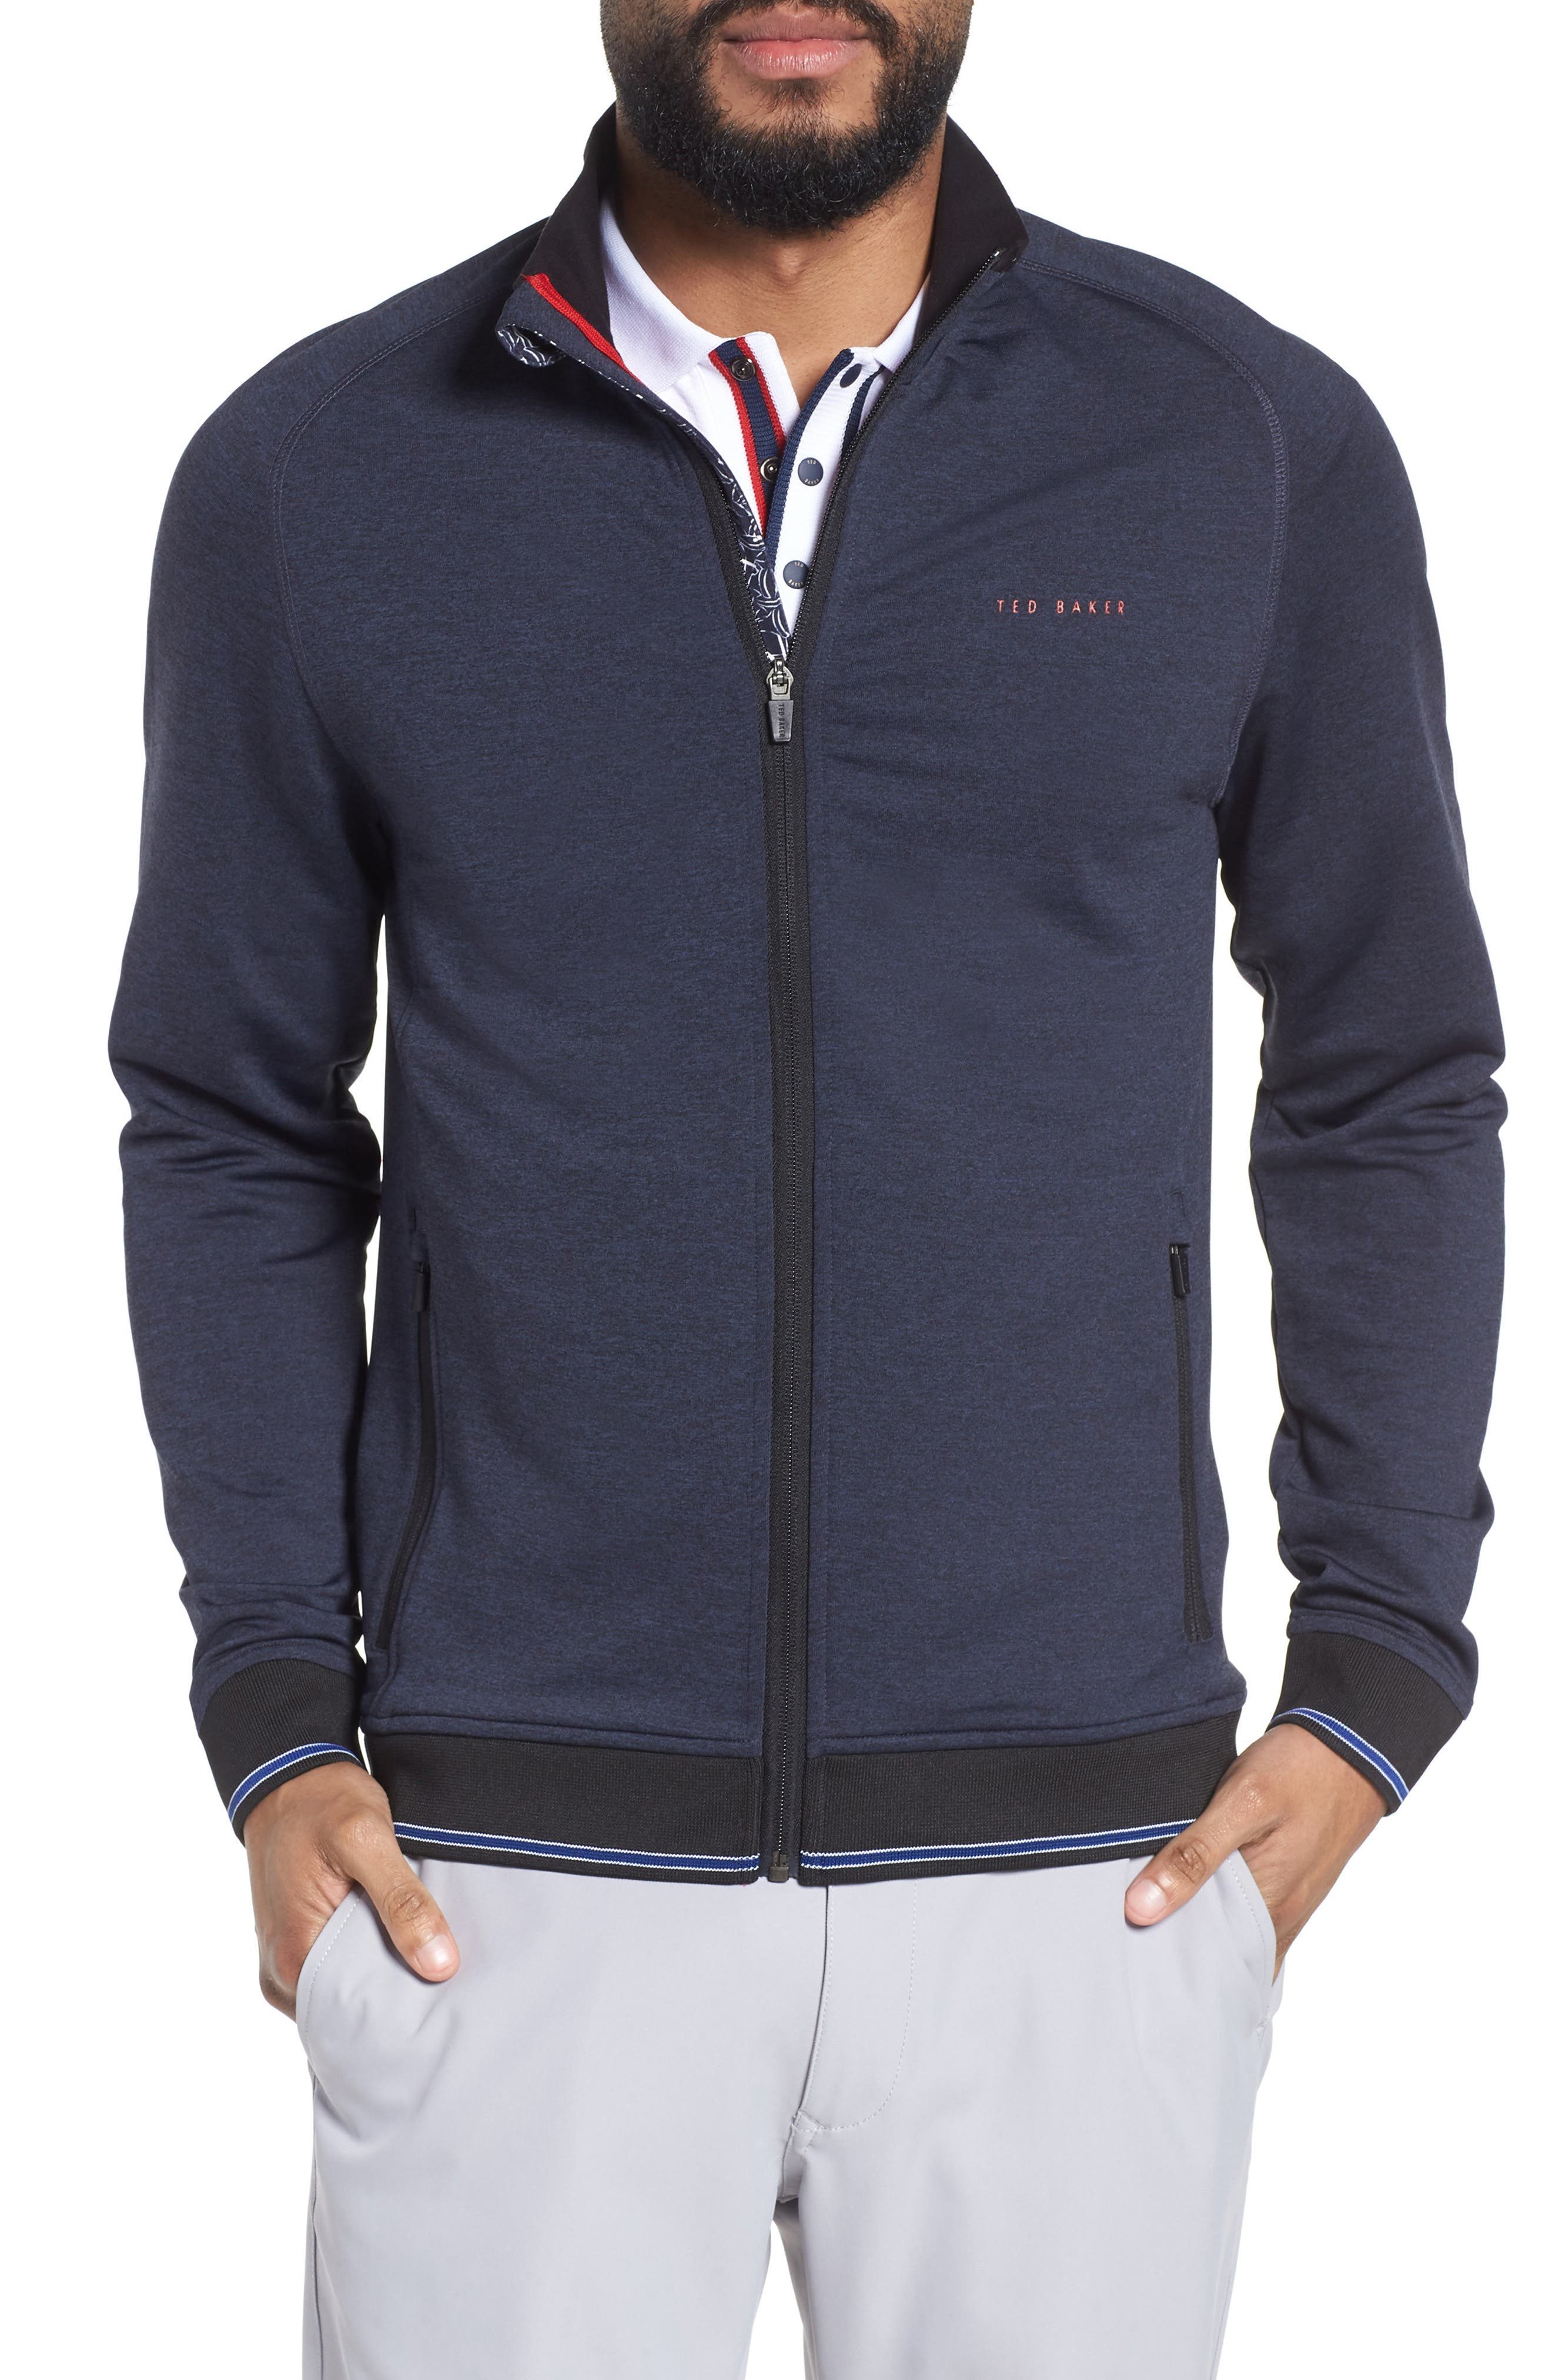 Parway Knit Golf Jacket,                         Main,                         color, 410